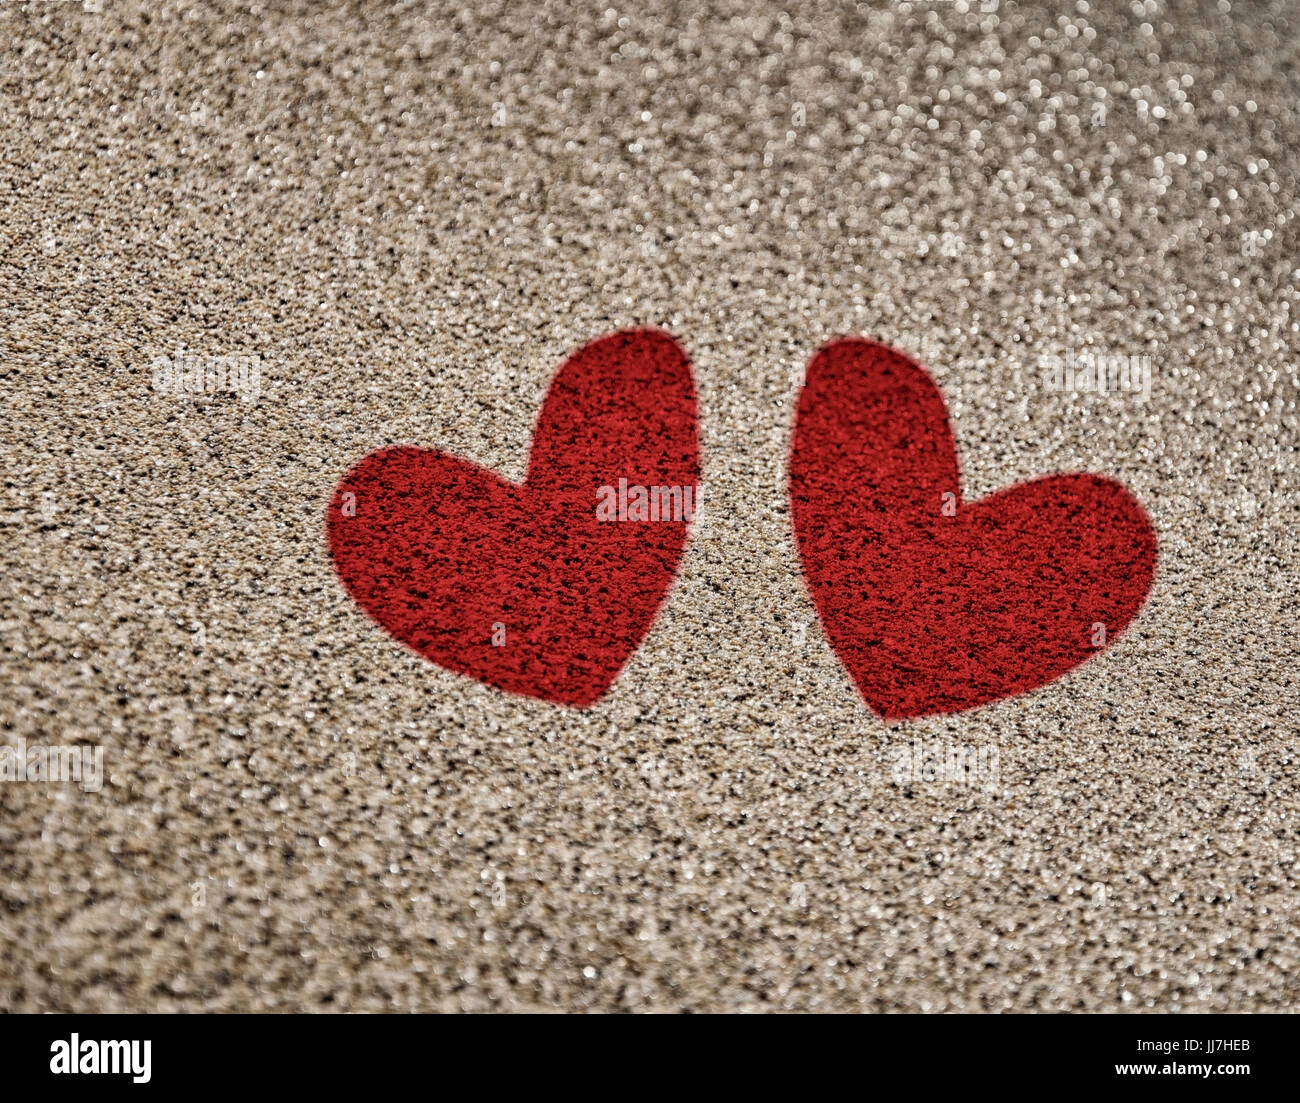 Painted two red heart on the sand a symbol of love stock photo painted two red heart on the sand a symbol of love biocorpaavc Images